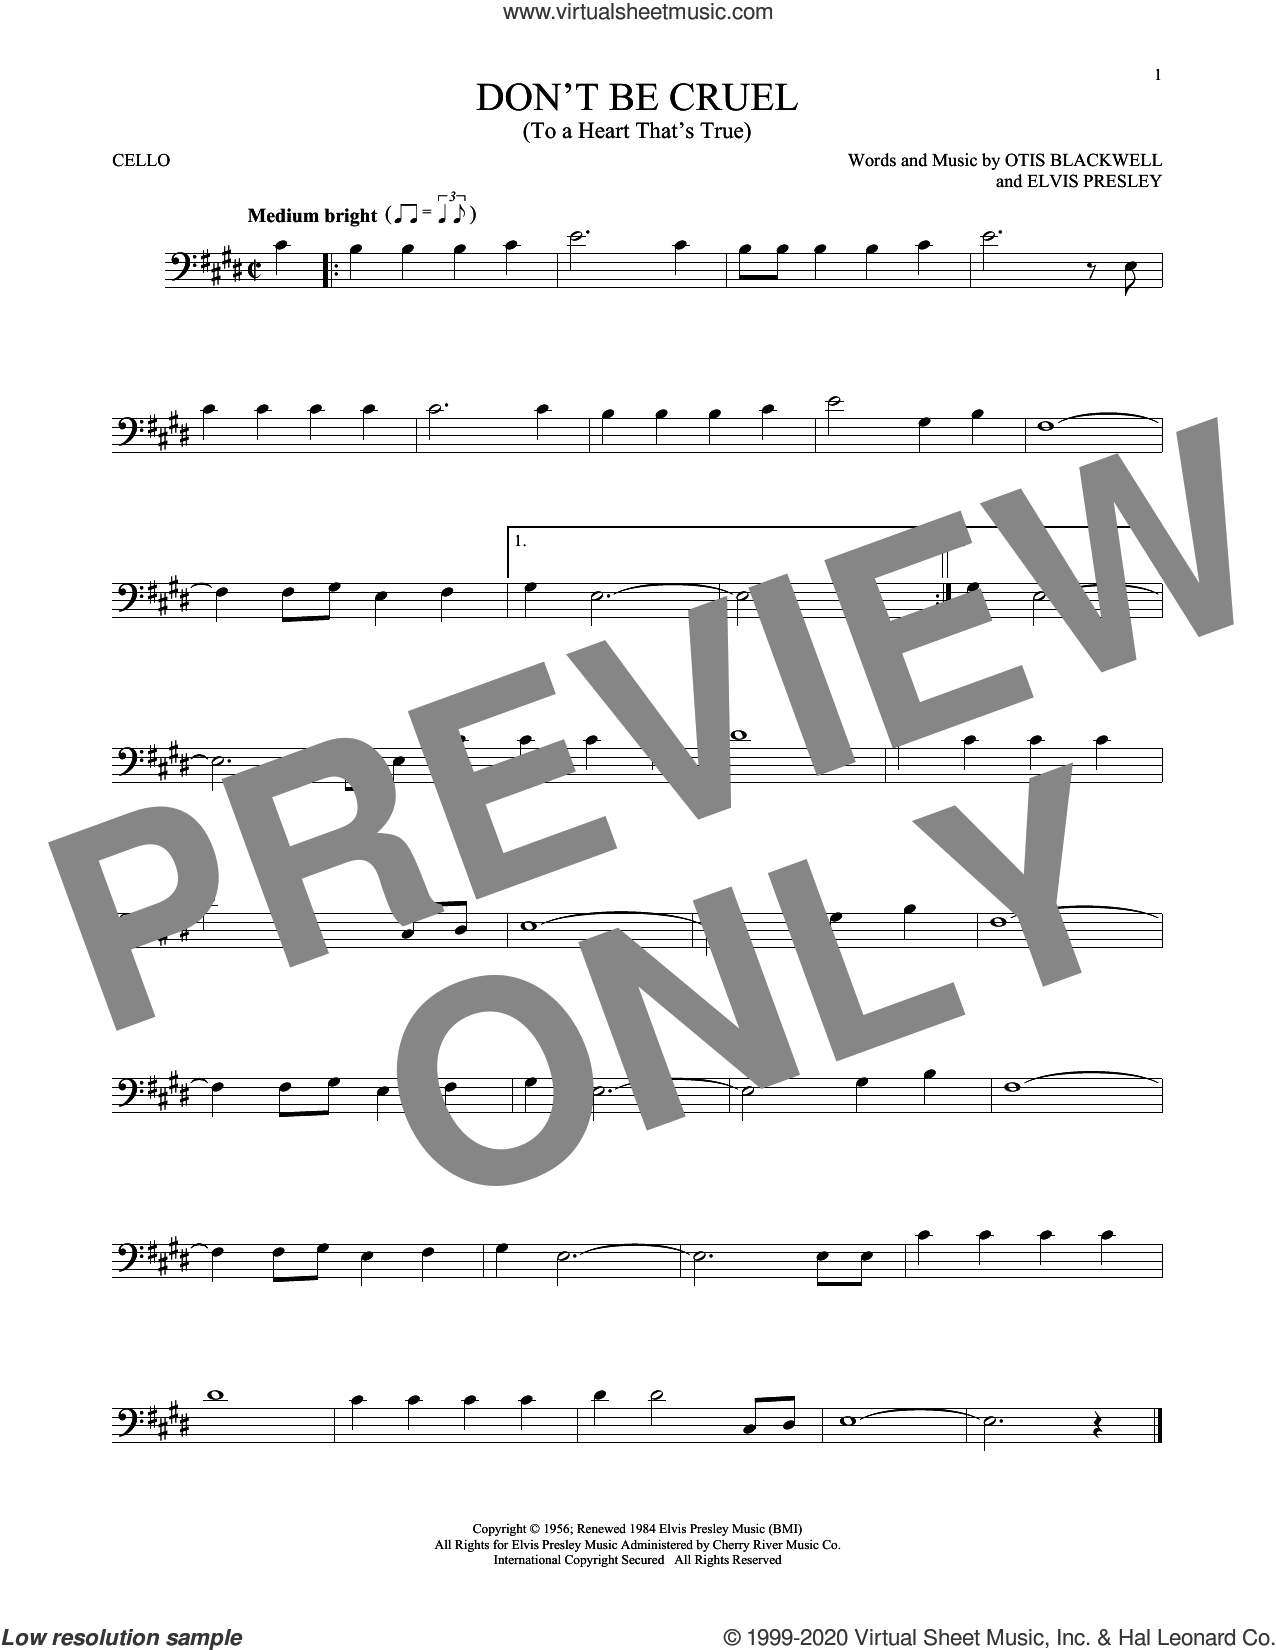 Don't Be Cruel (To A Heart That's True) sheet music for cello solo by Elvis Presley and Otis Blackwell, intermediate skill level